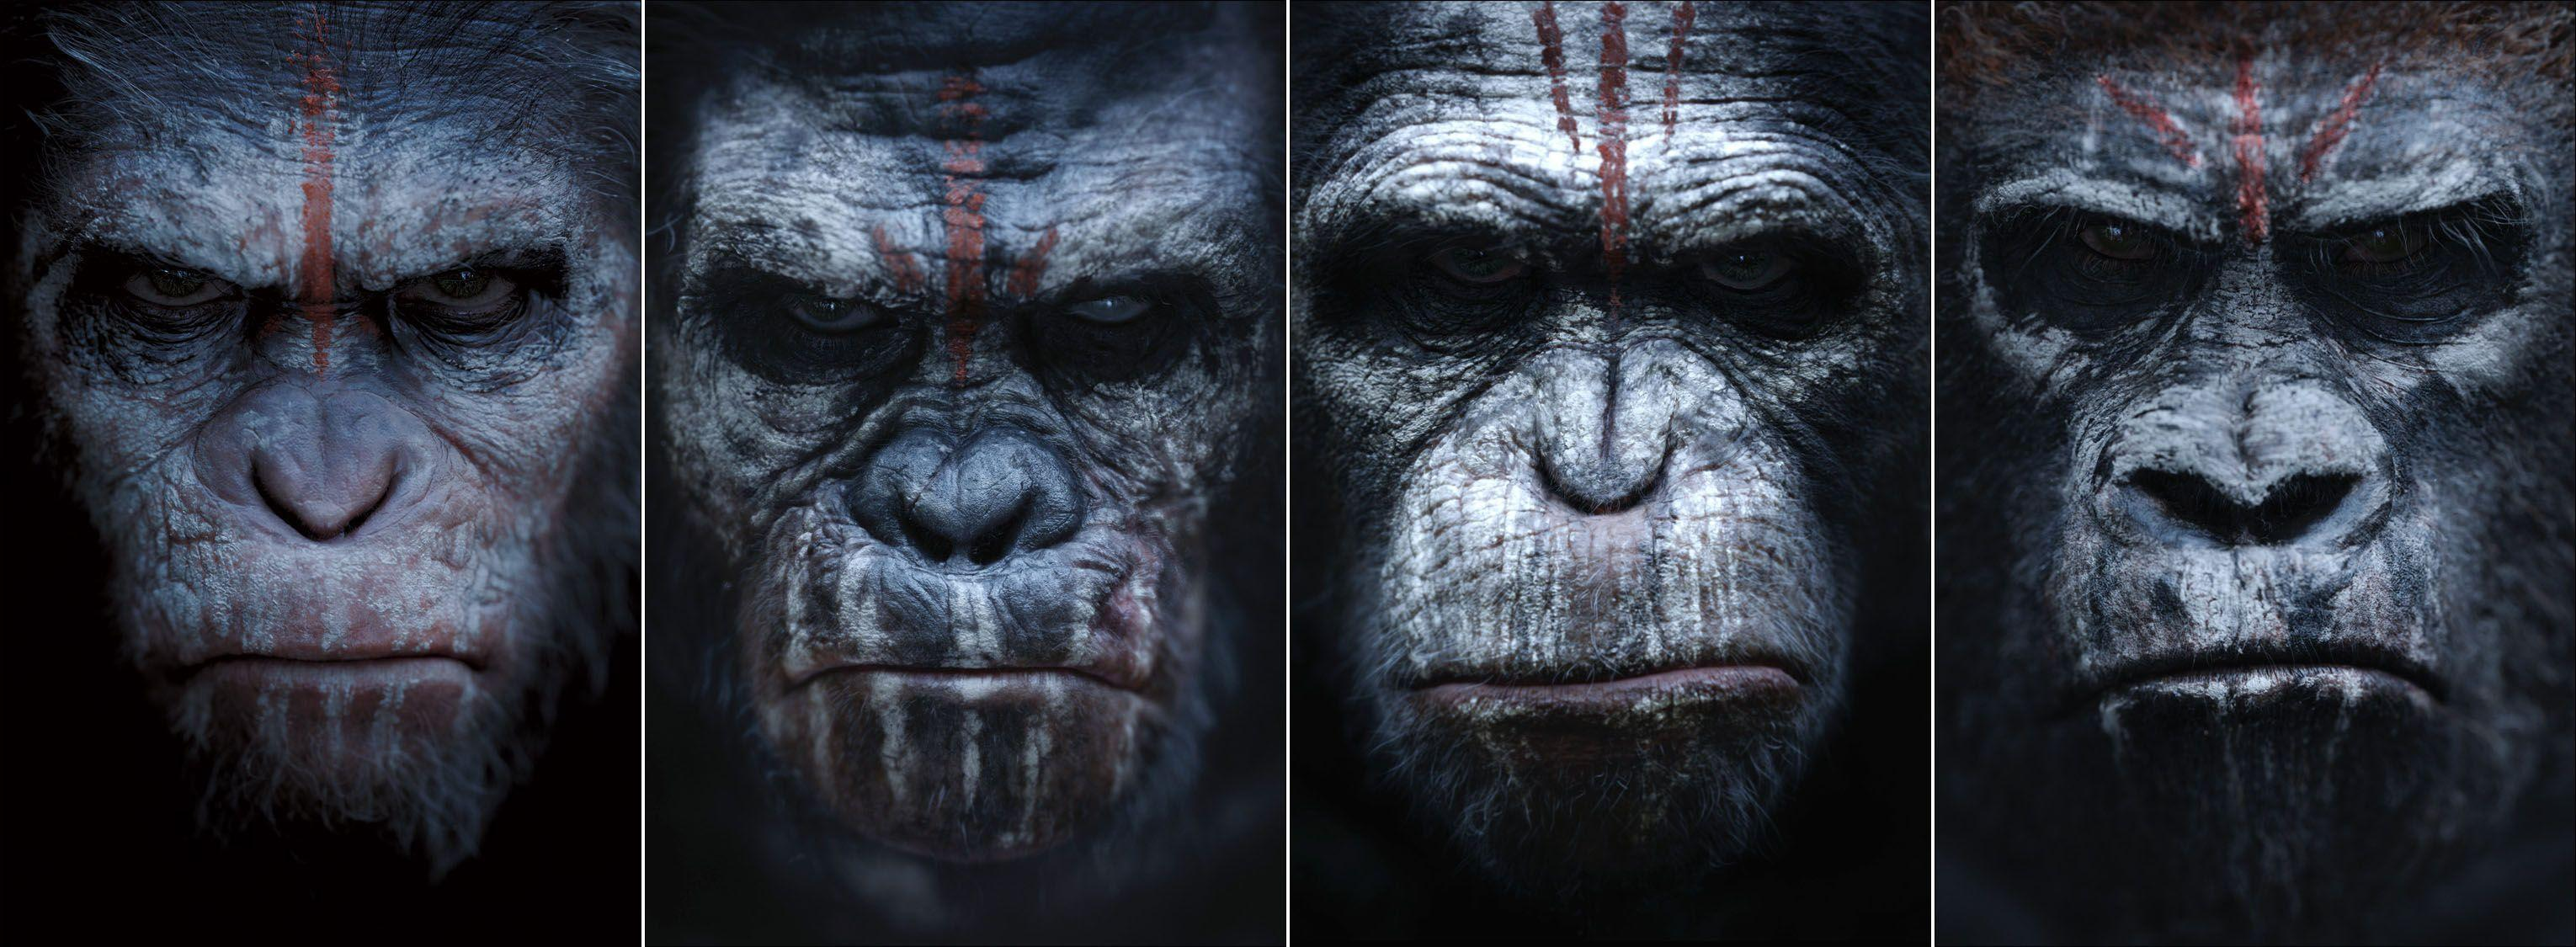 war of the planet of the apes download free